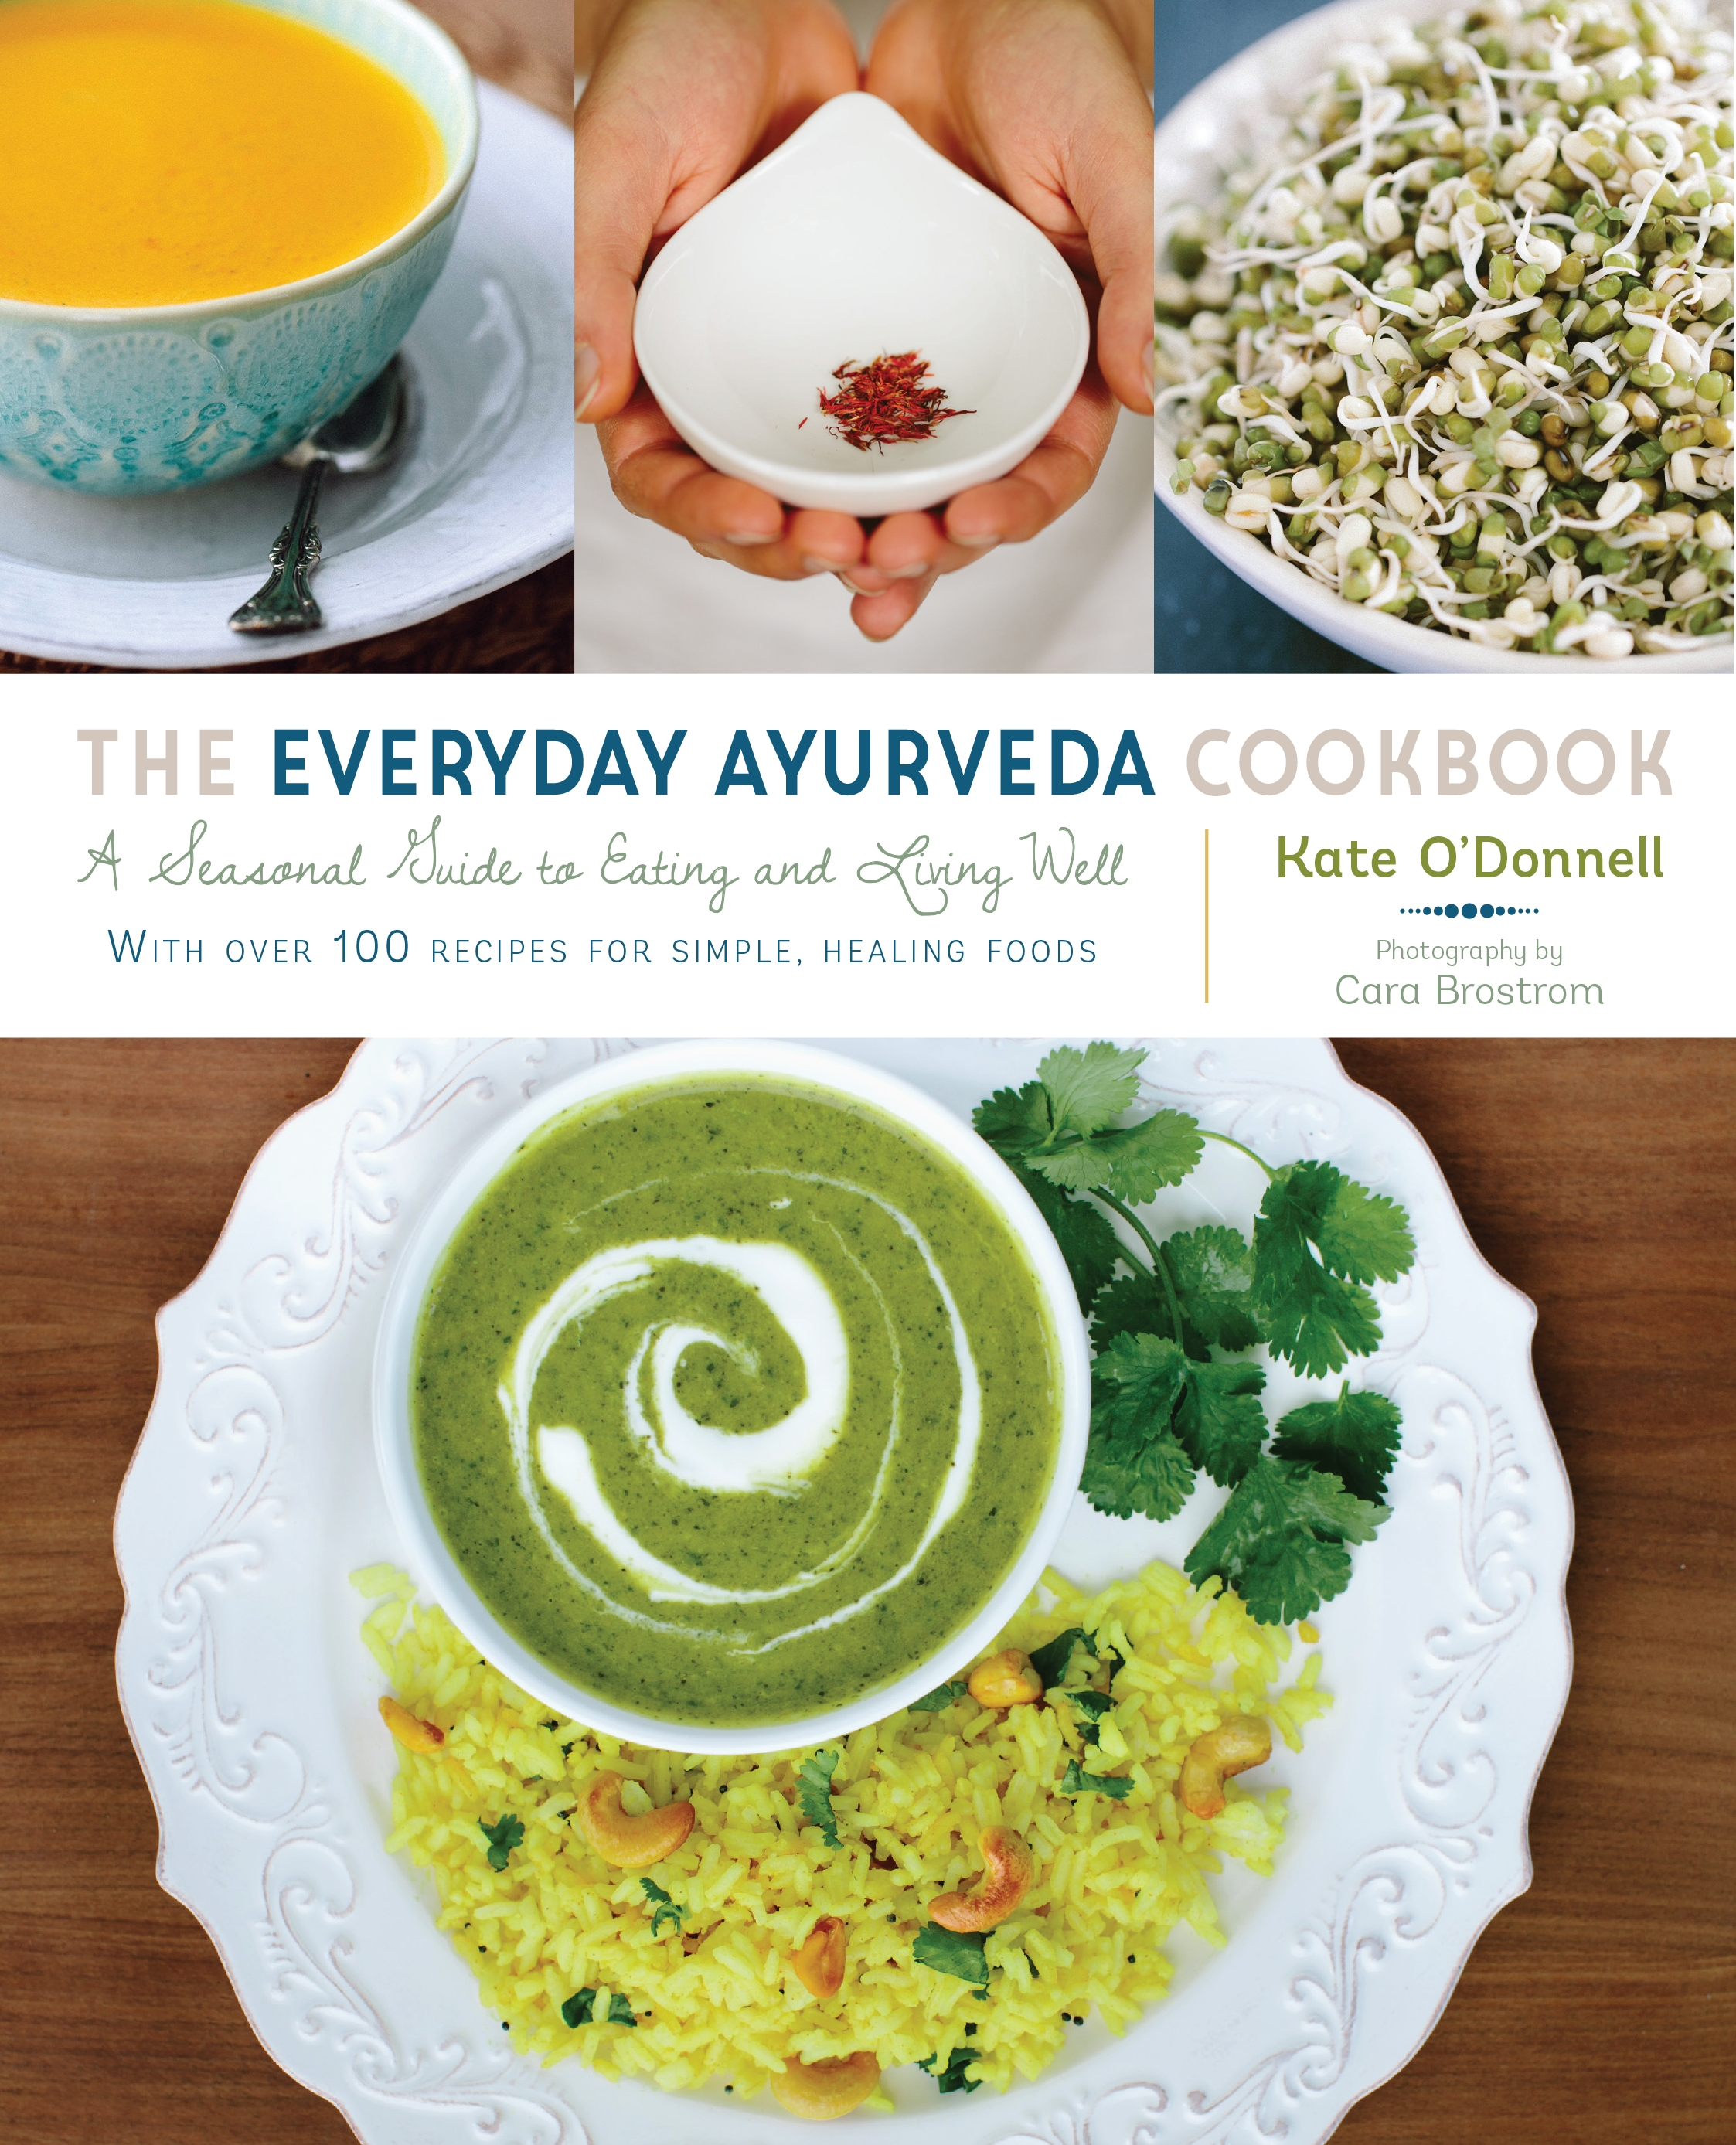 The everyday ayurveda cookbook by kate odonnell penguin books the everyday ayurveda cookbook forumfinder Gallery